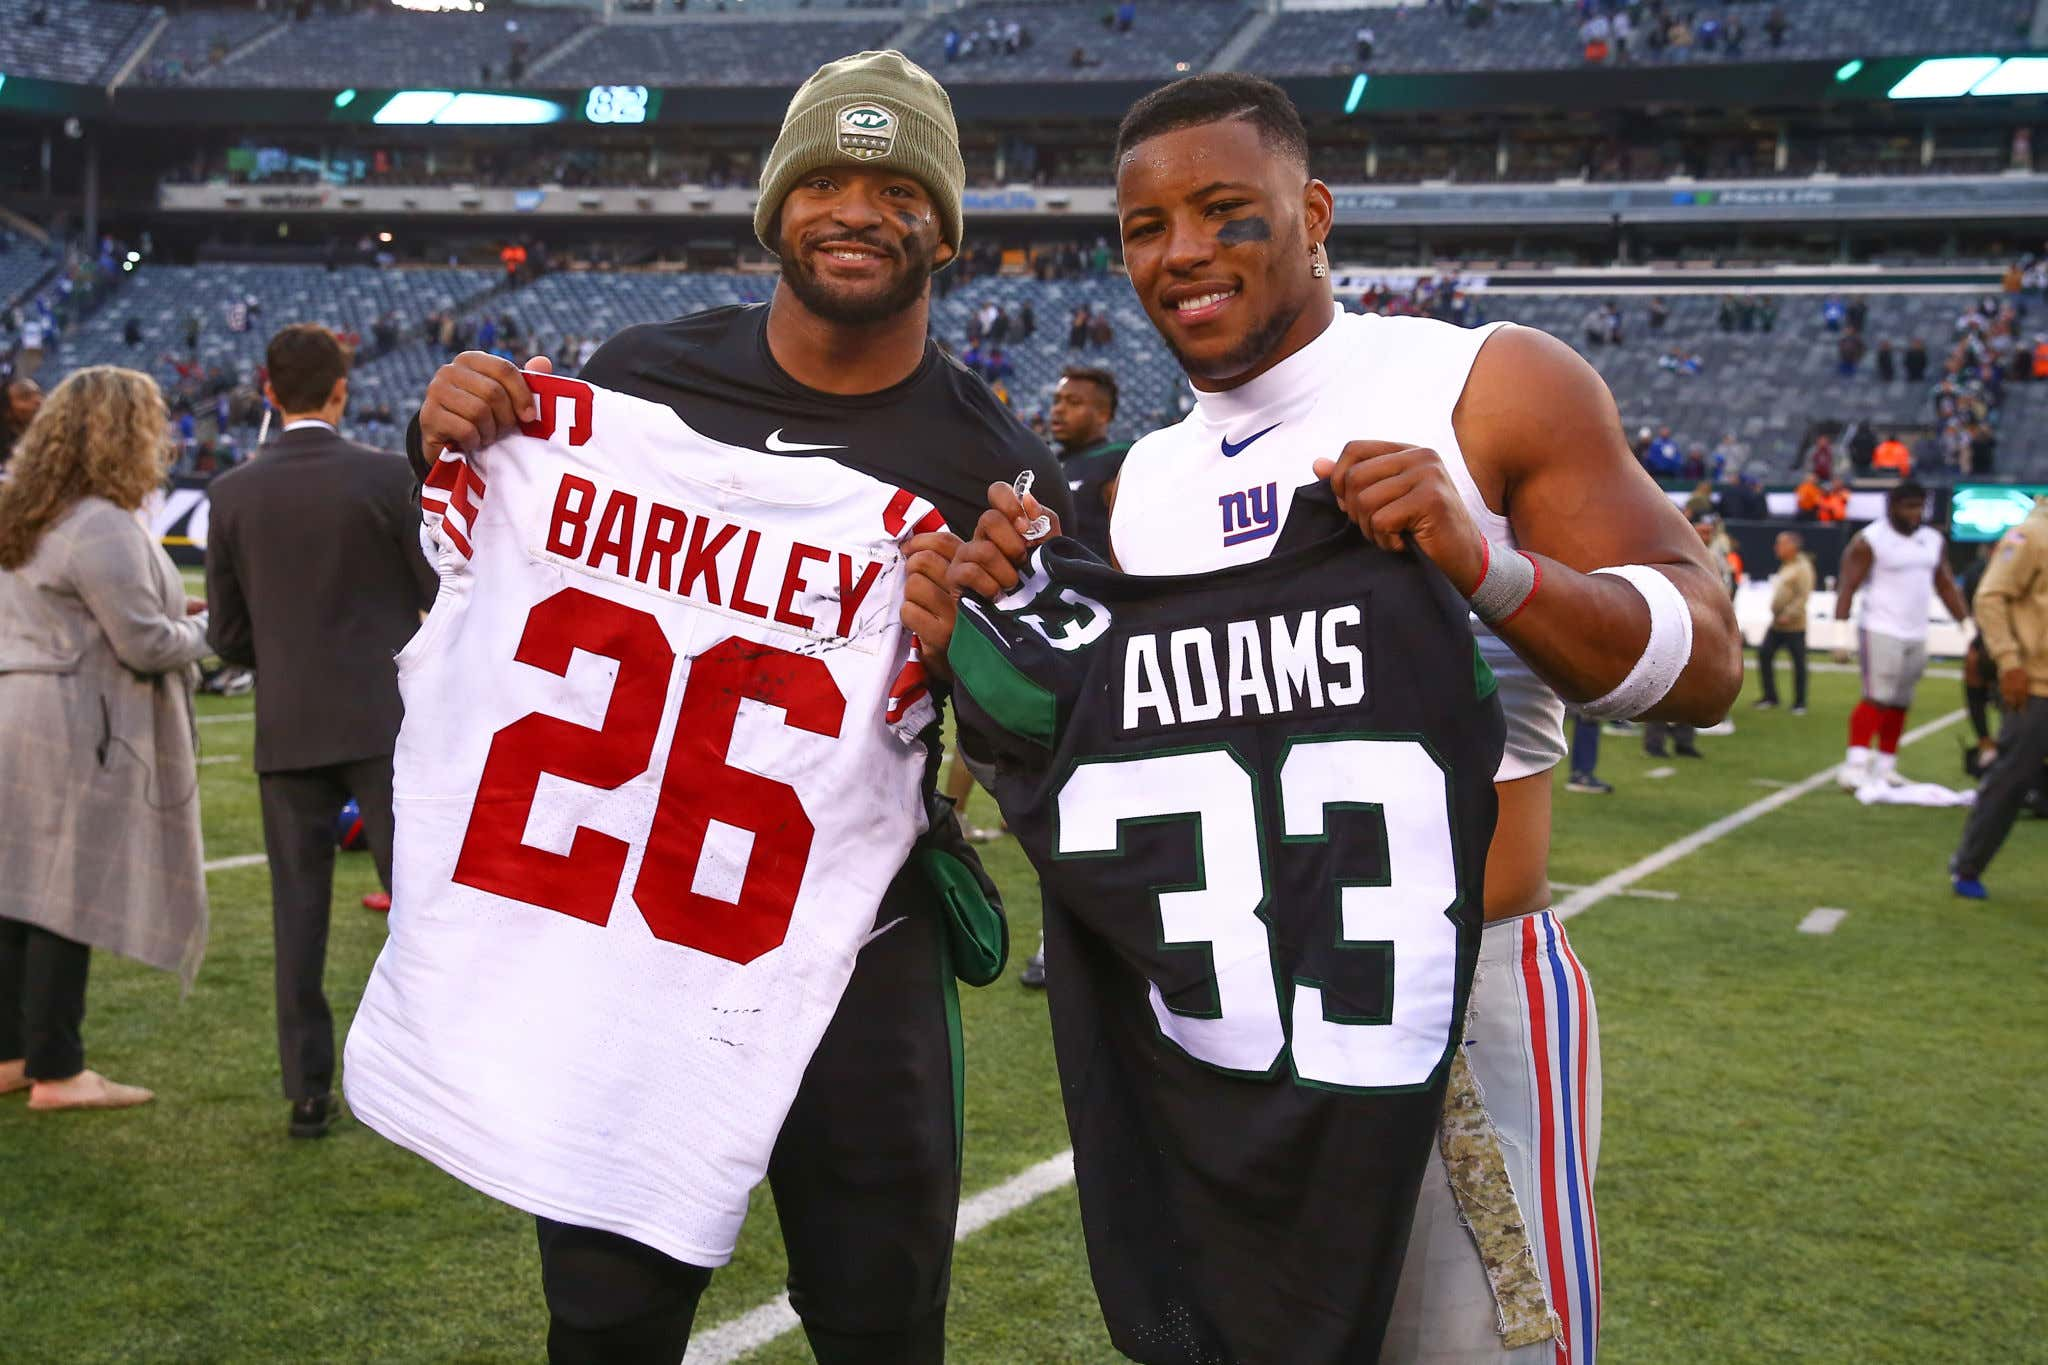 EAST RUTHERFORD, NJ - NOVEMBER 10:  New York Jets strong safety Jamal Adams (33) and New York Giants running back Saquon Barkley (26) swap jerseys after the National Football League game between the New York Jets and the New York Giants on November 10, 2019 at MetLife Stadium in East Rutherford, NJ.  (Photo by Rich Graessle/Icon Sportswire via Getty Images)